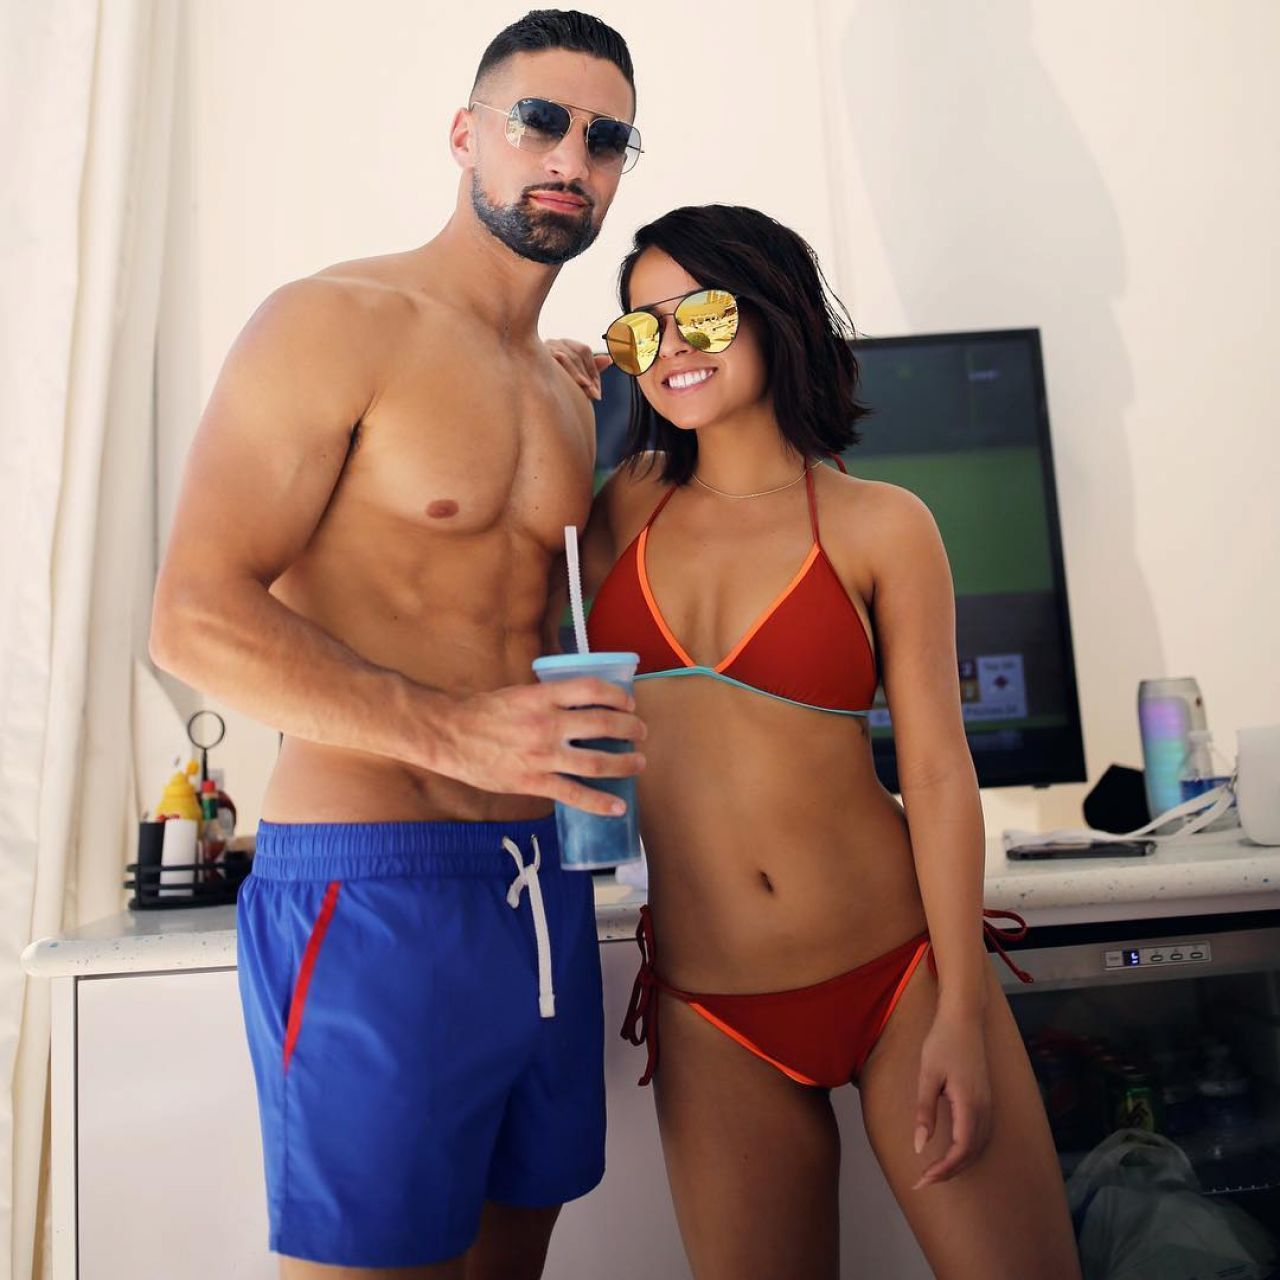 2019 Kristina Shcherbinina nudes (47 foto and video), Topless, Is a cute, Twitter, swimsuit 2020